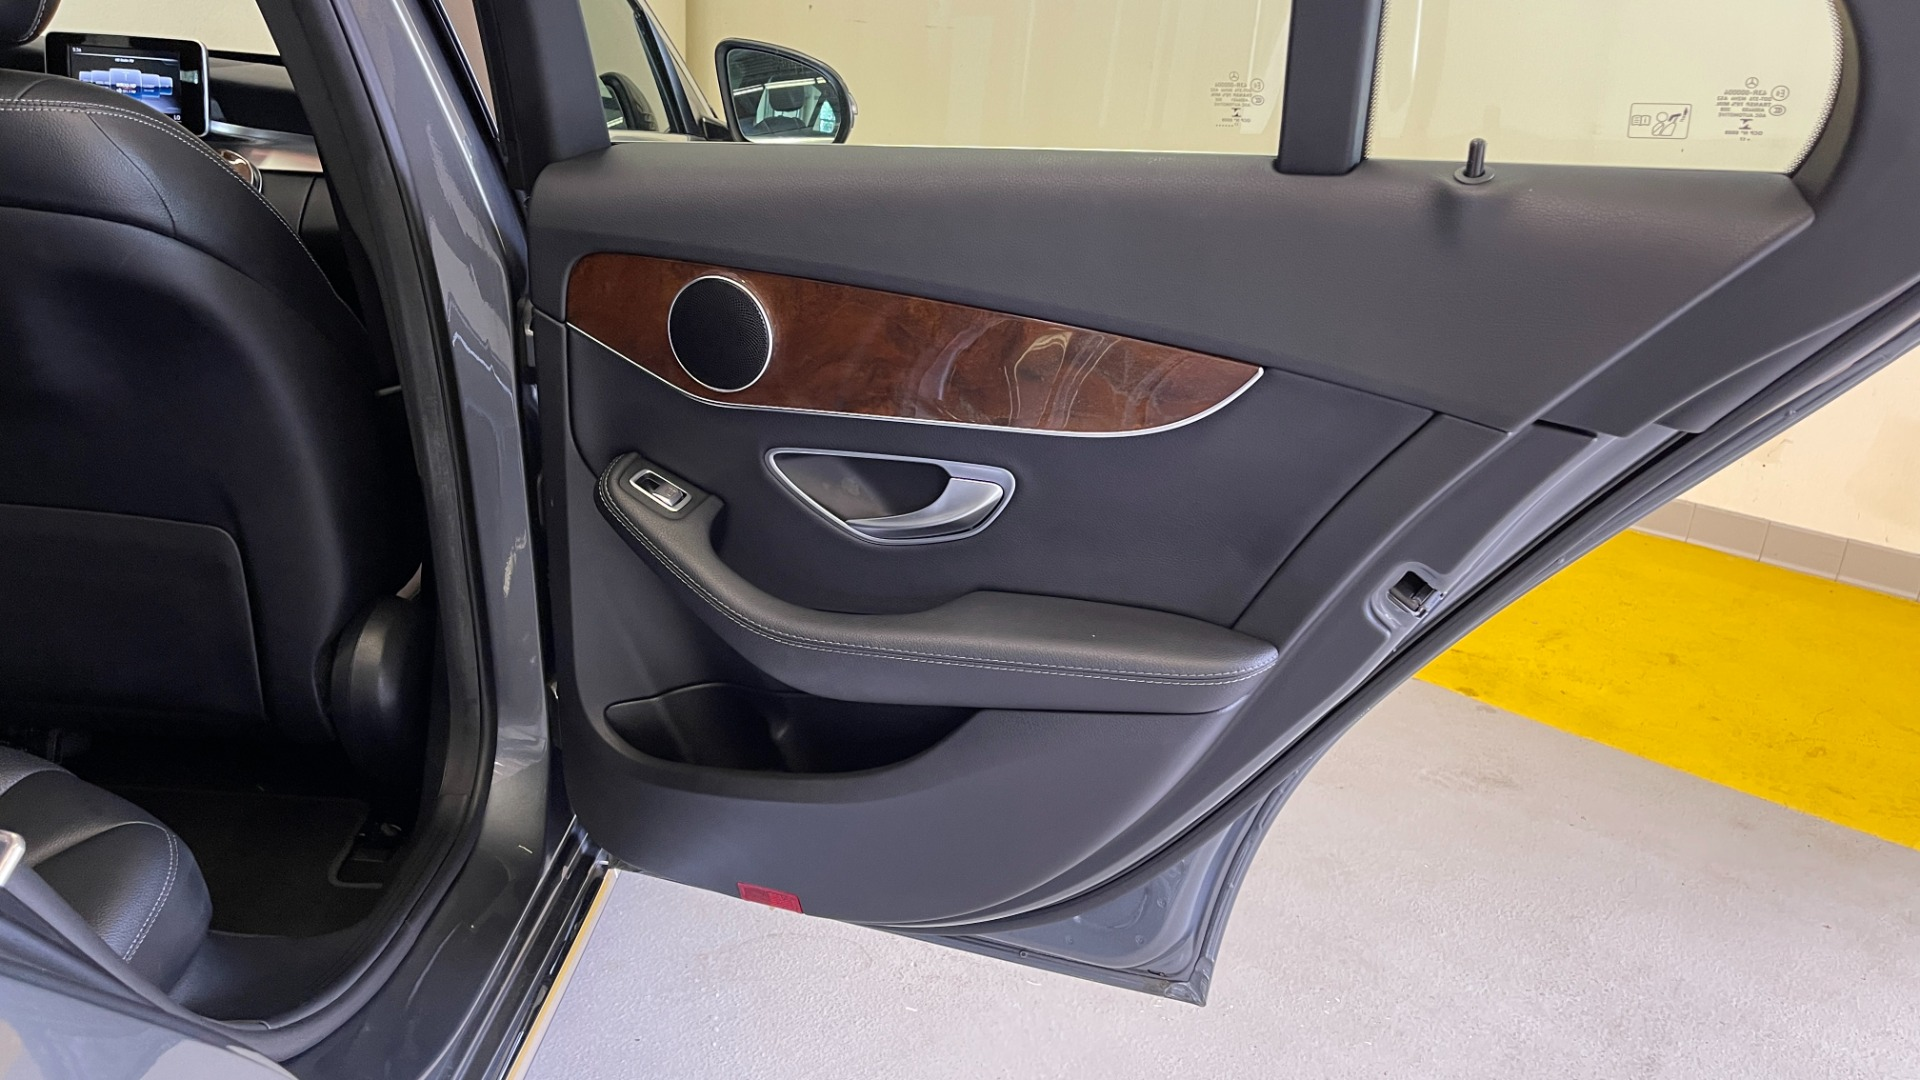 Used 2018 Mercedes-Benz C-CLASS C 300 PREMIUM / SUNROOF / APPLE CARPLAY / HTD STS / REARVIEW for sale $31,795 at Formula Imports in Charlotte NC 28227 43